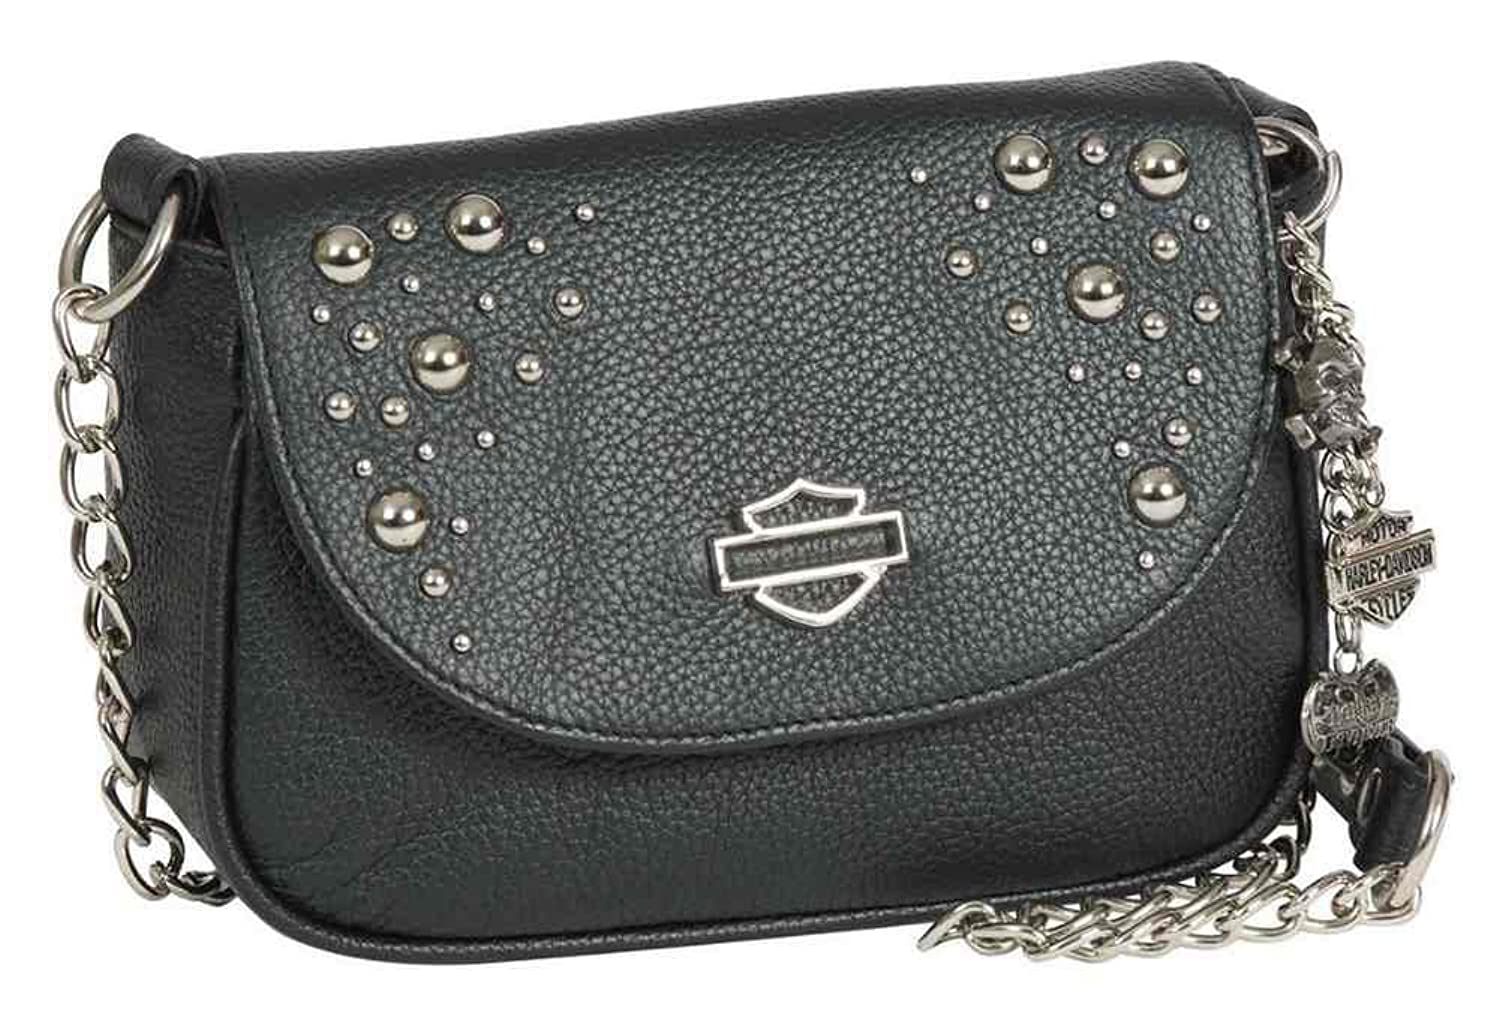 Harley-Davidson Women's Rider Studded Bodega Purse, Black Leather RD6255L-BLACK